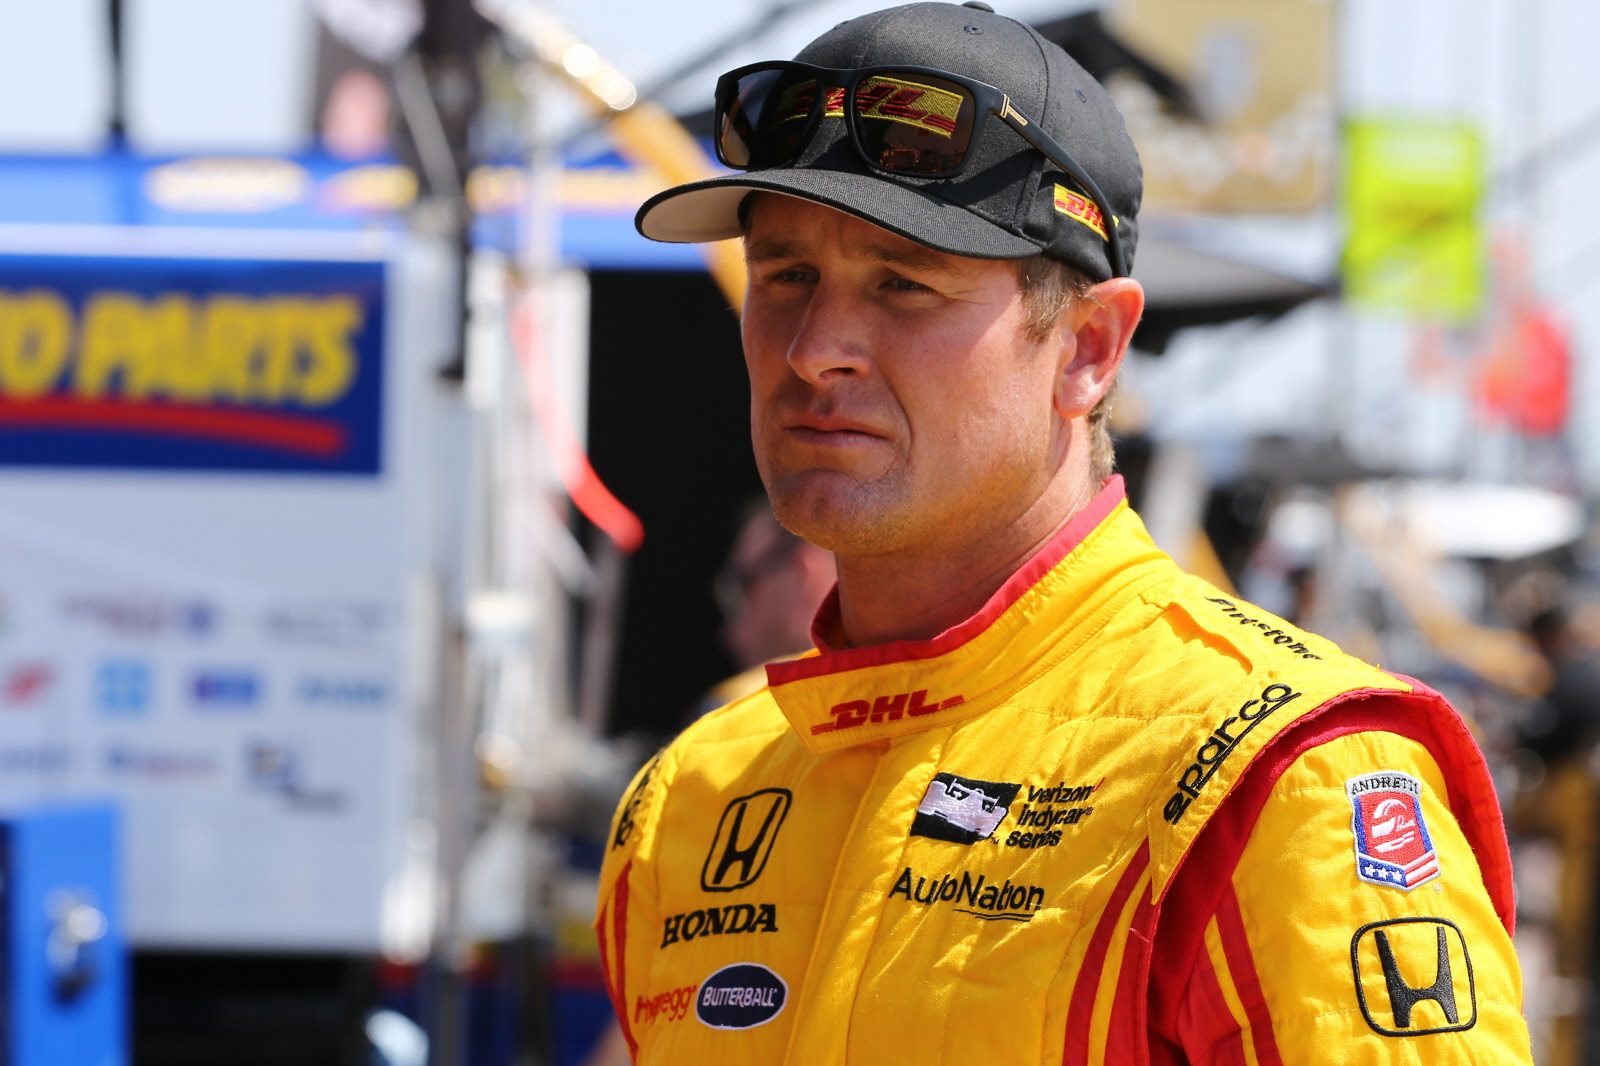 Ryan Hunter-Reay on pit lane prior to the ABC Supply 500 at Pocono Raceway. [Chris Jones Photo]